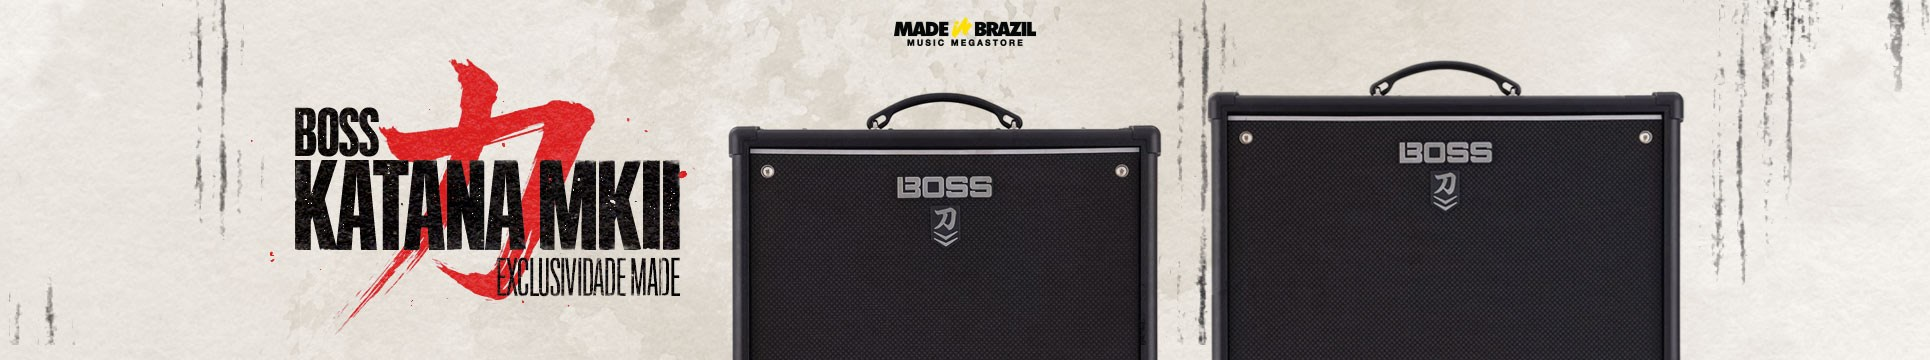 Boss Katana MKII | Made in Brazil Music Megastore